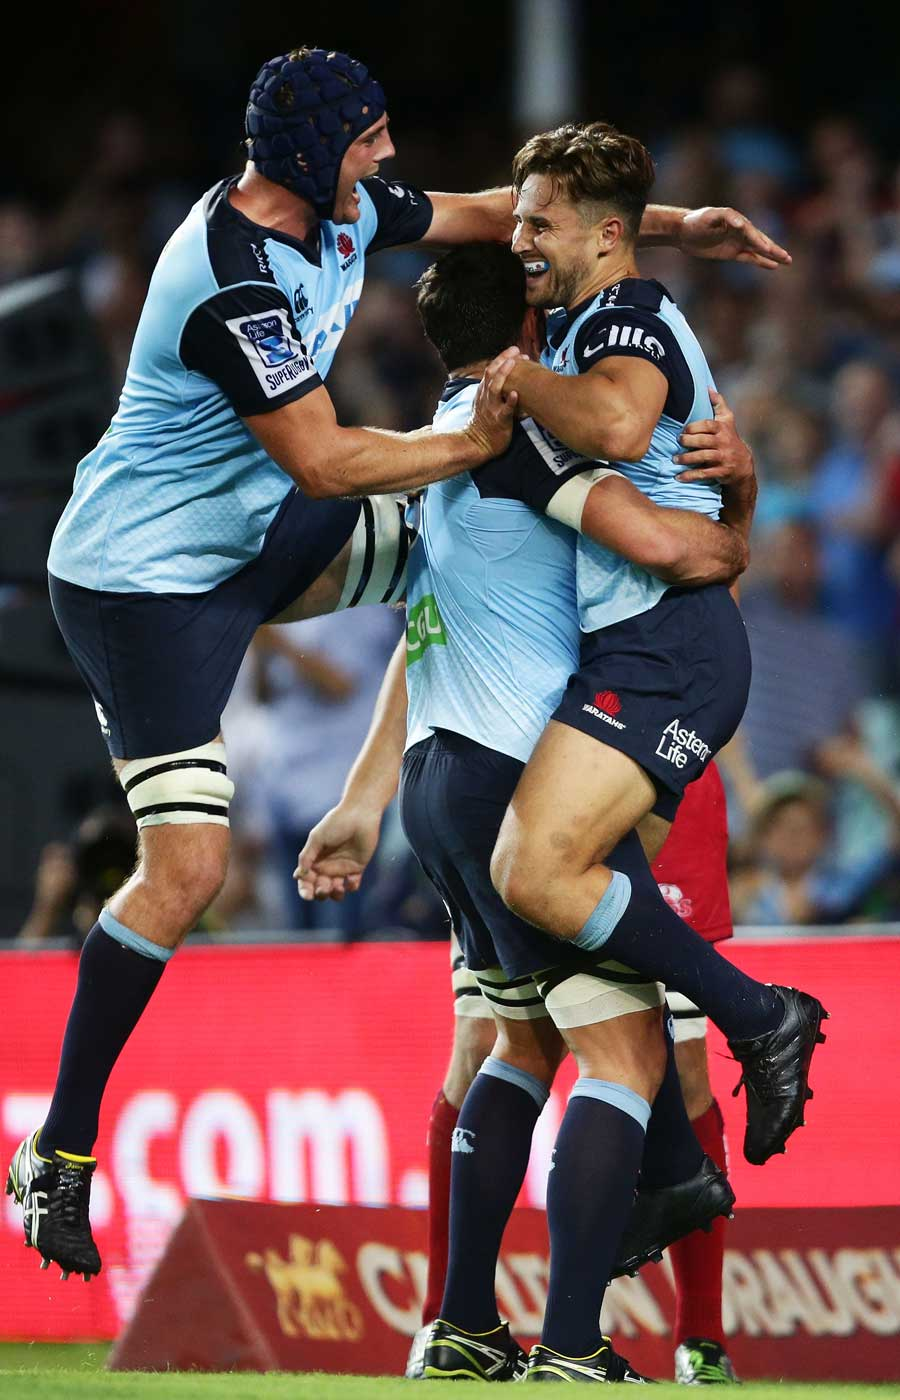 The Waratahs' David Horwitz (right) celebrates his try with Dean Mumm and team-mates